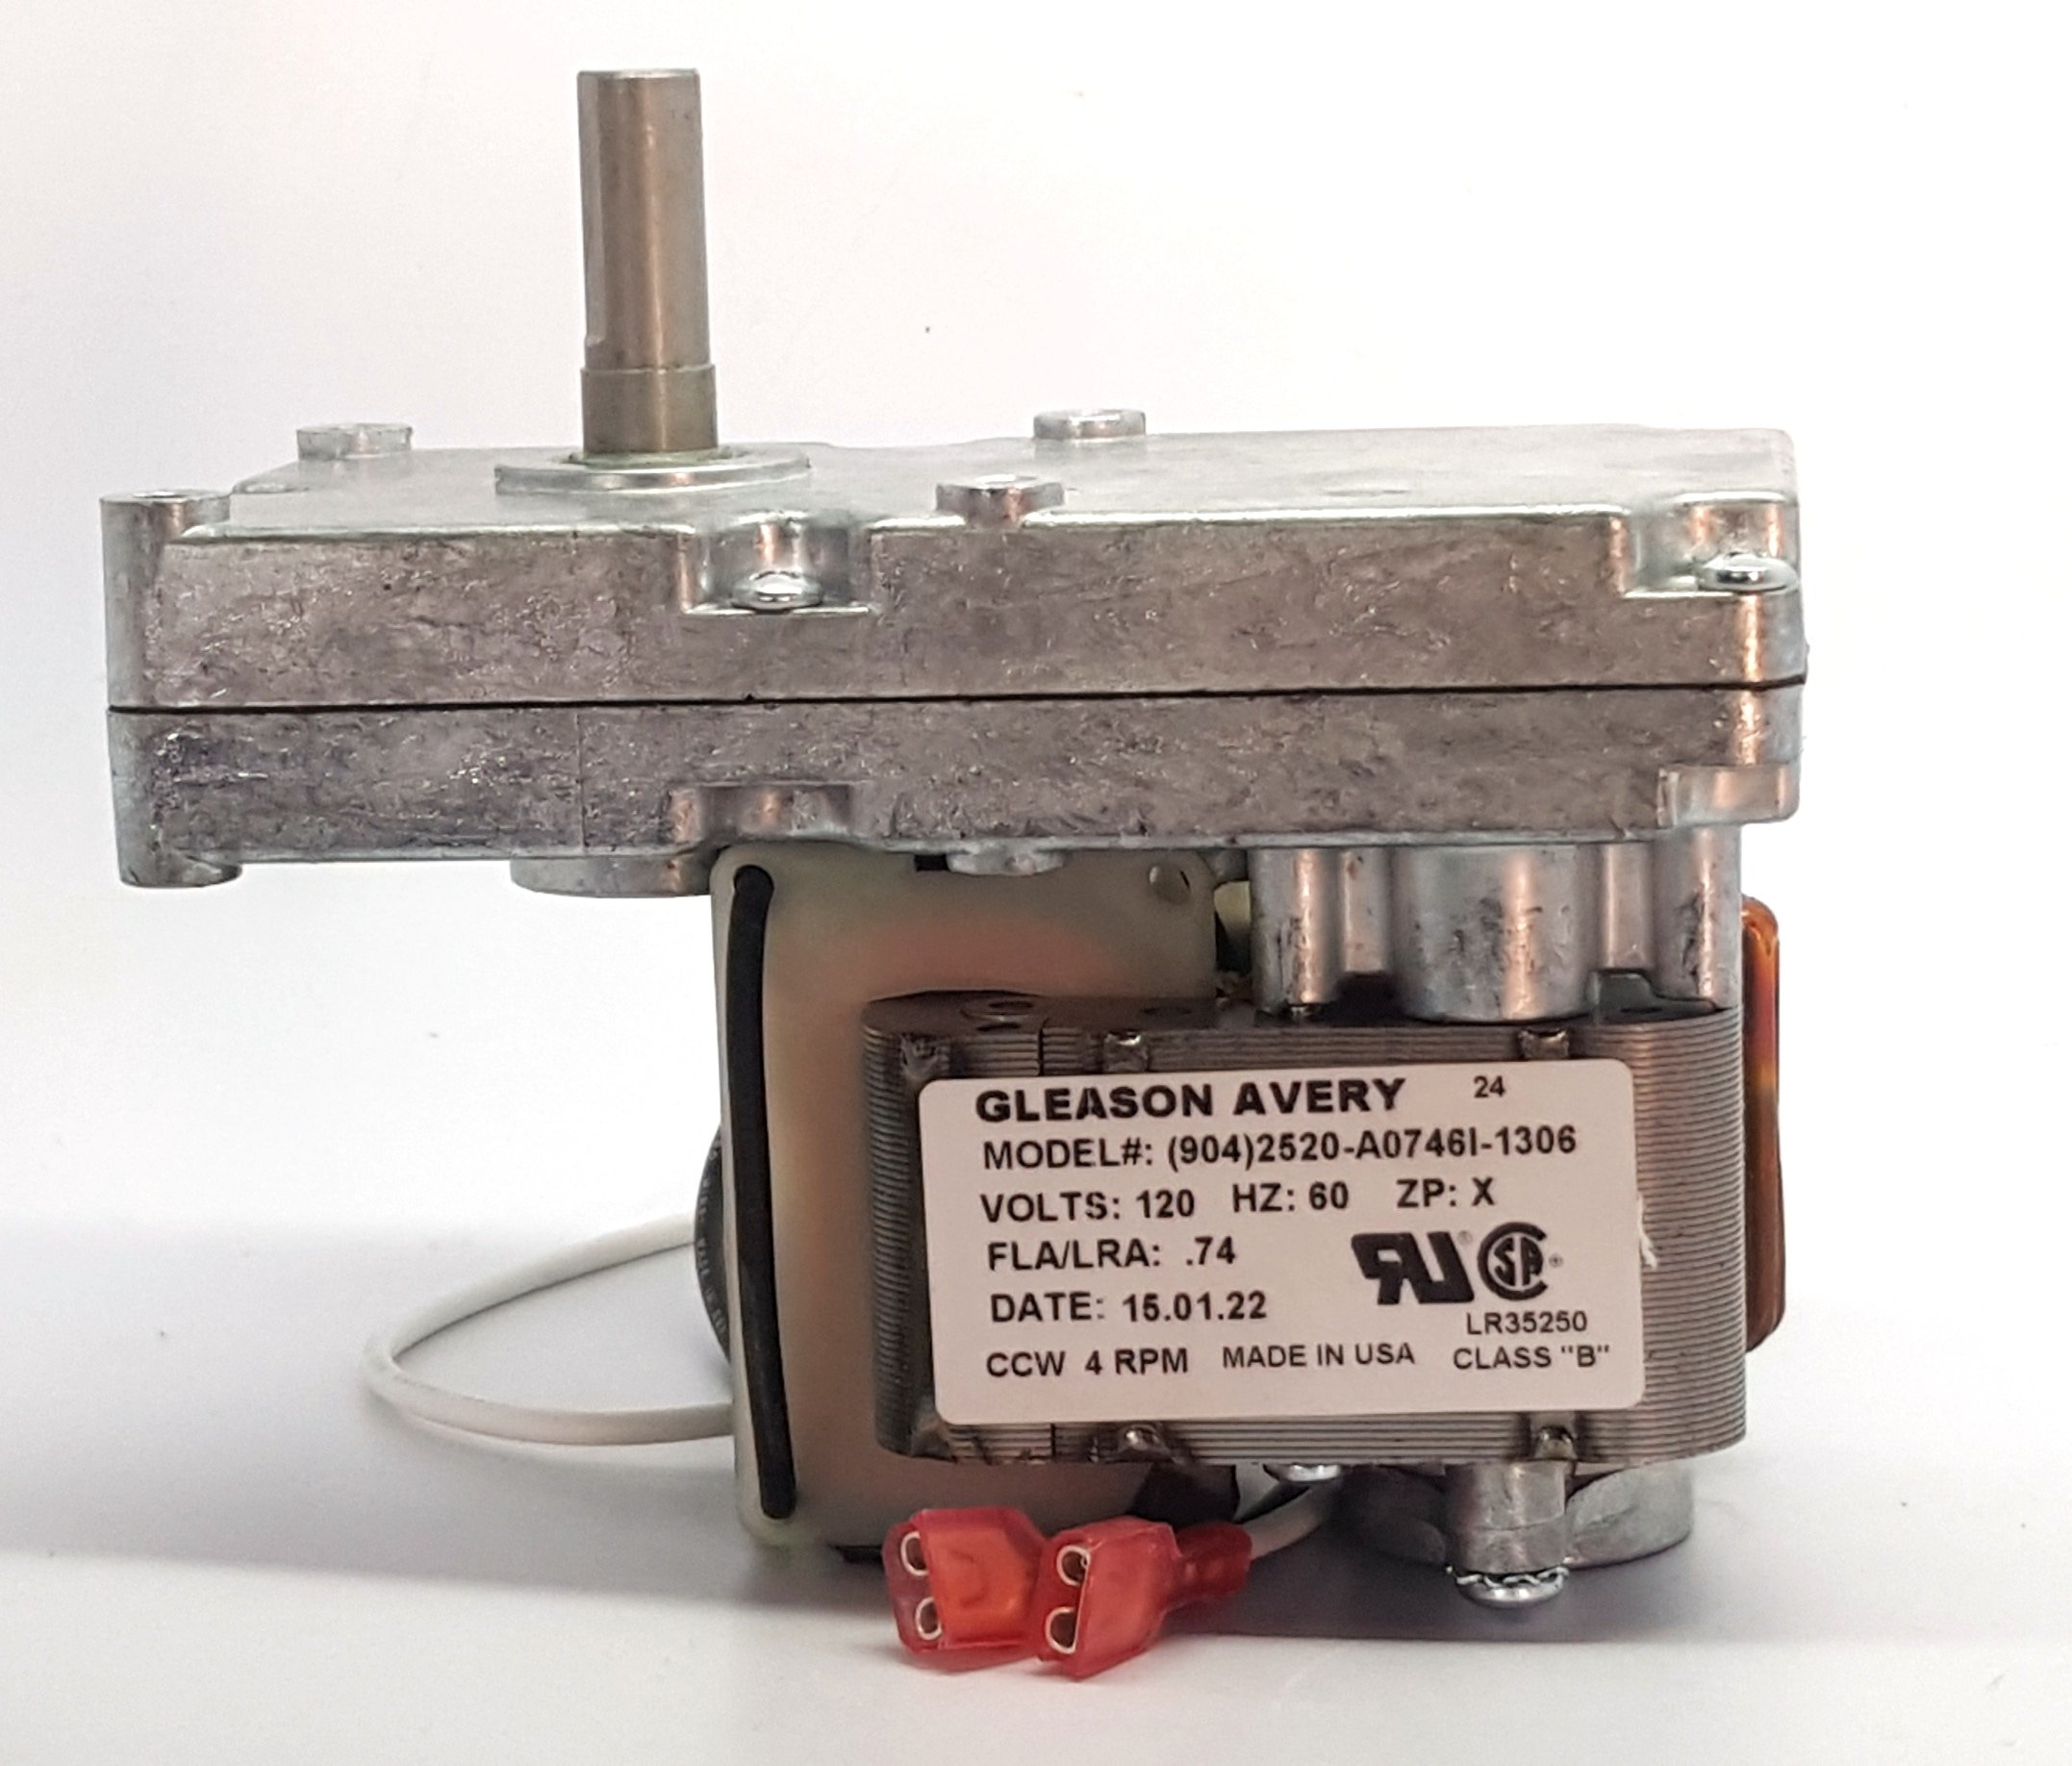 Harman pellet stove auger motor for -Advance-Accentra-XXV-3-20-08752 by Harman